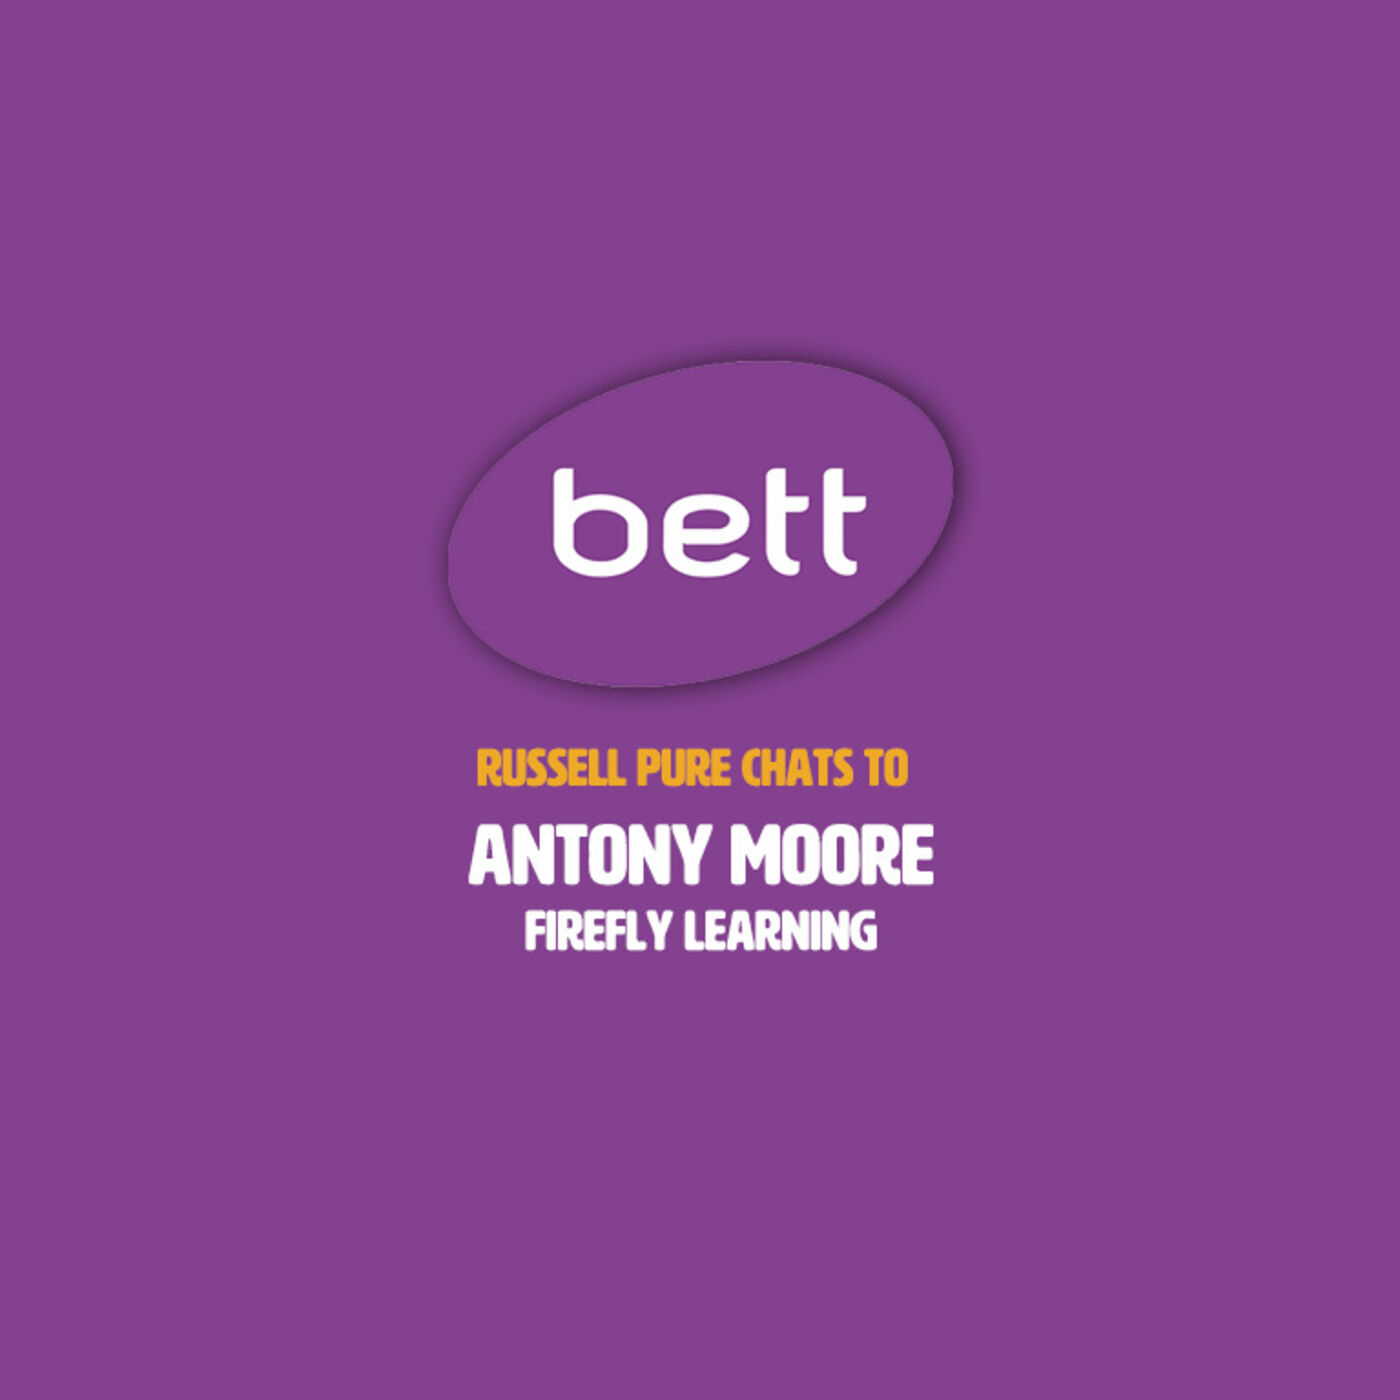 Antony Moore from Firefly Learning chats about what he's enjoying at Bett